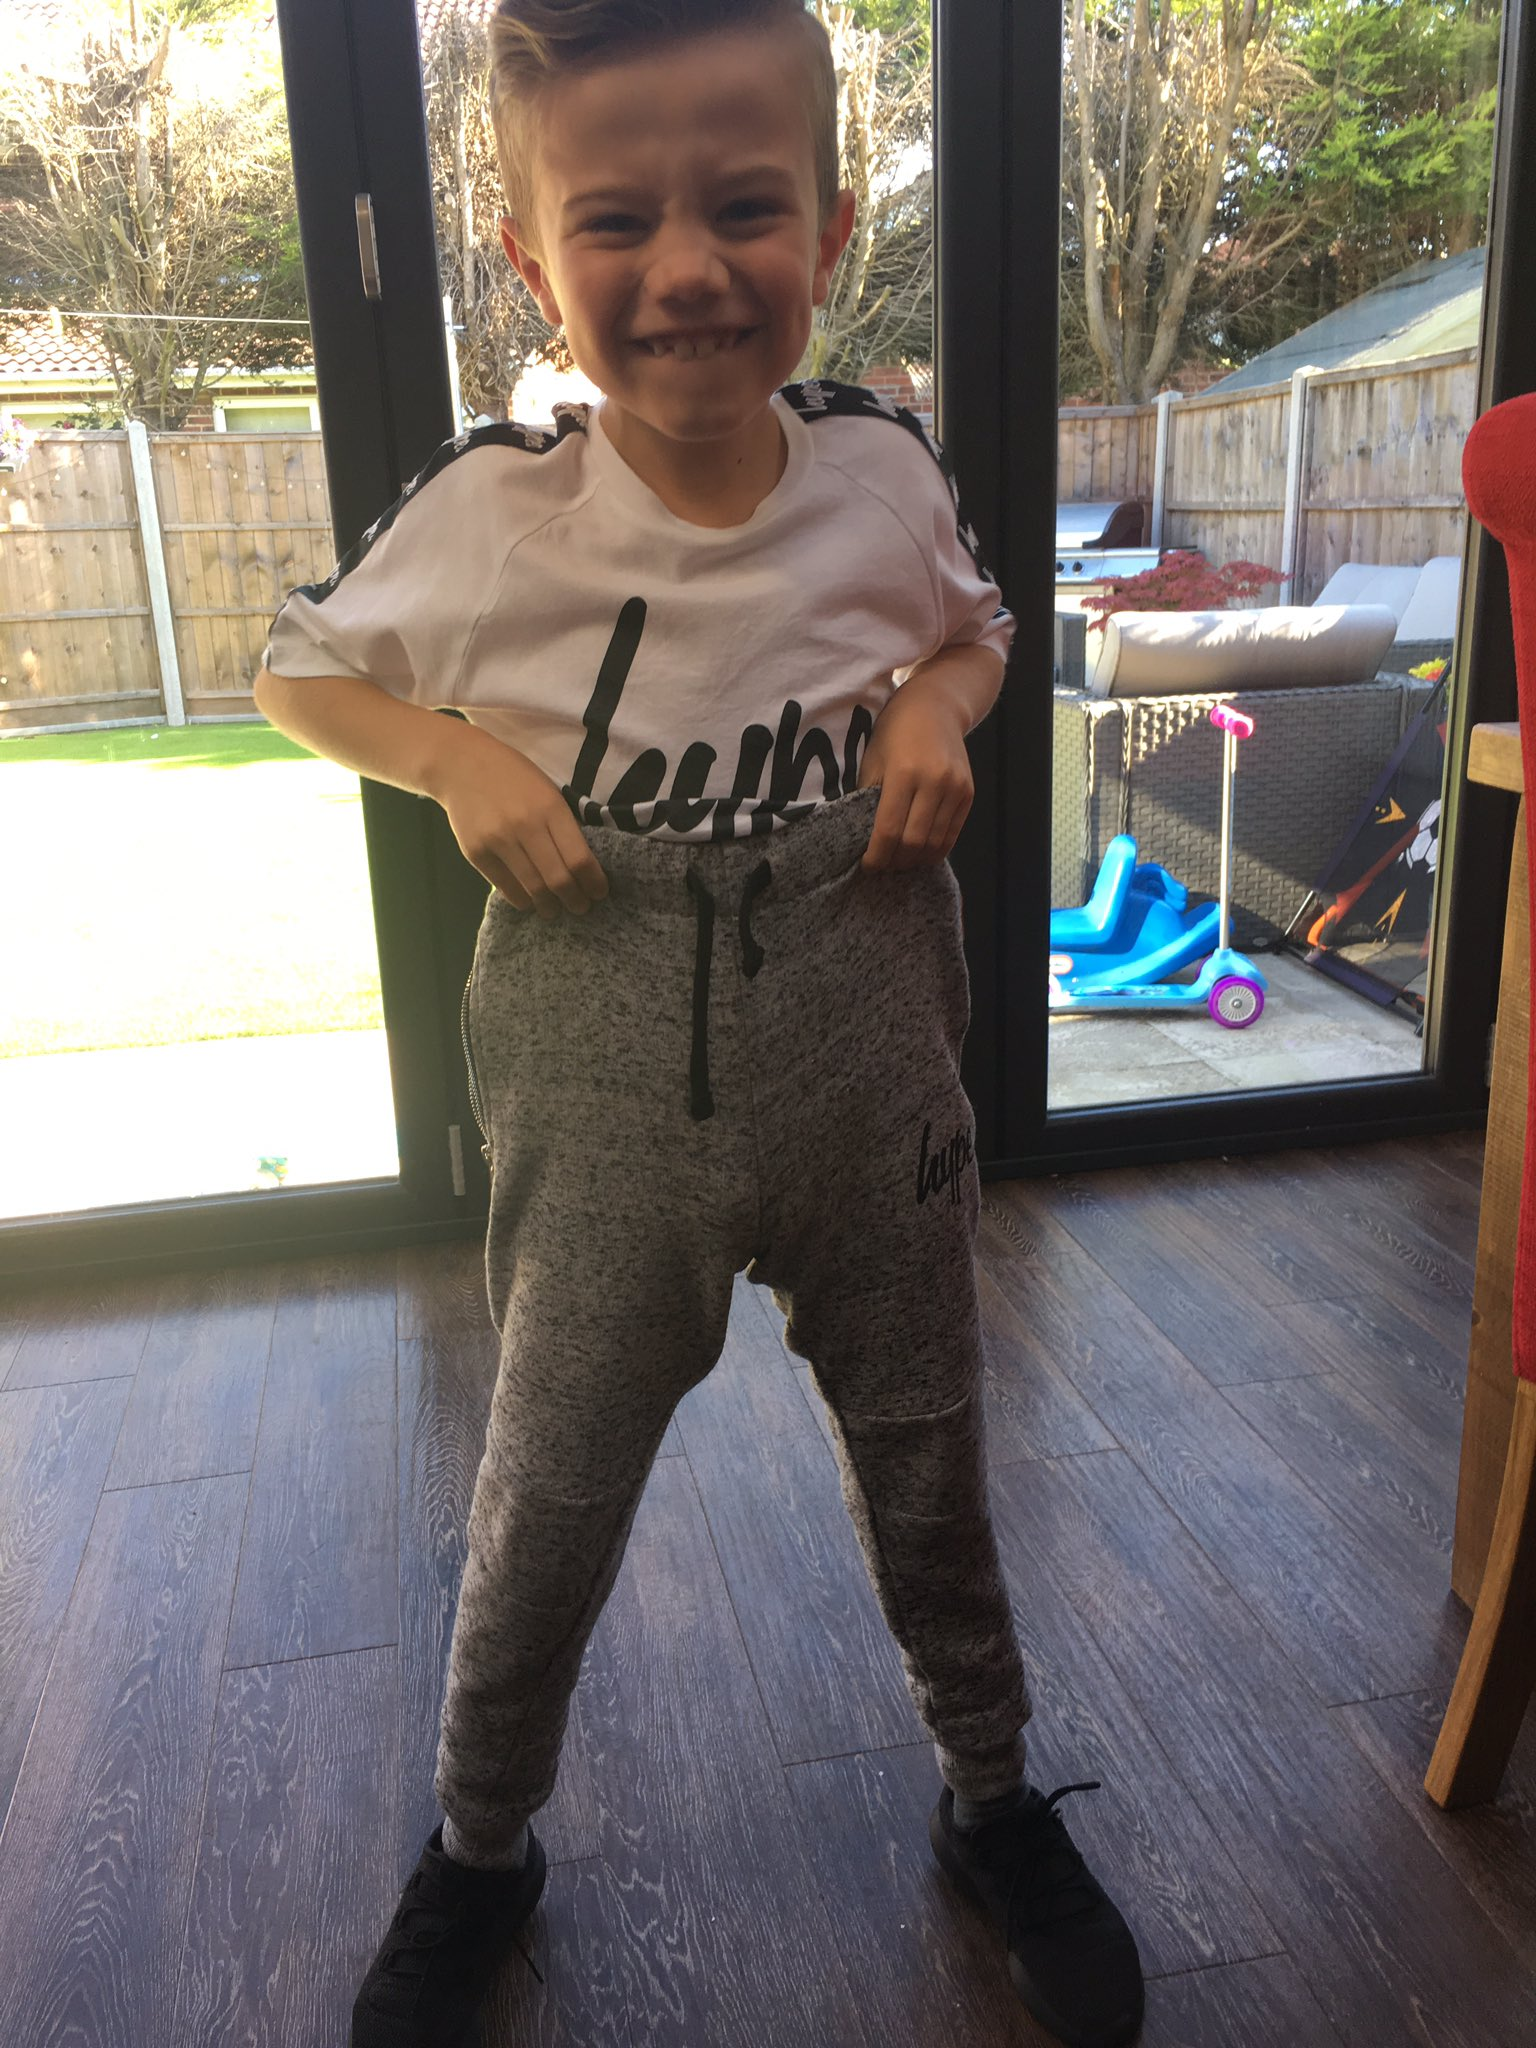 Tommy came in saying look mummy, I'm Simon cowell 🙈 https://t.co/1aEynRNaLA